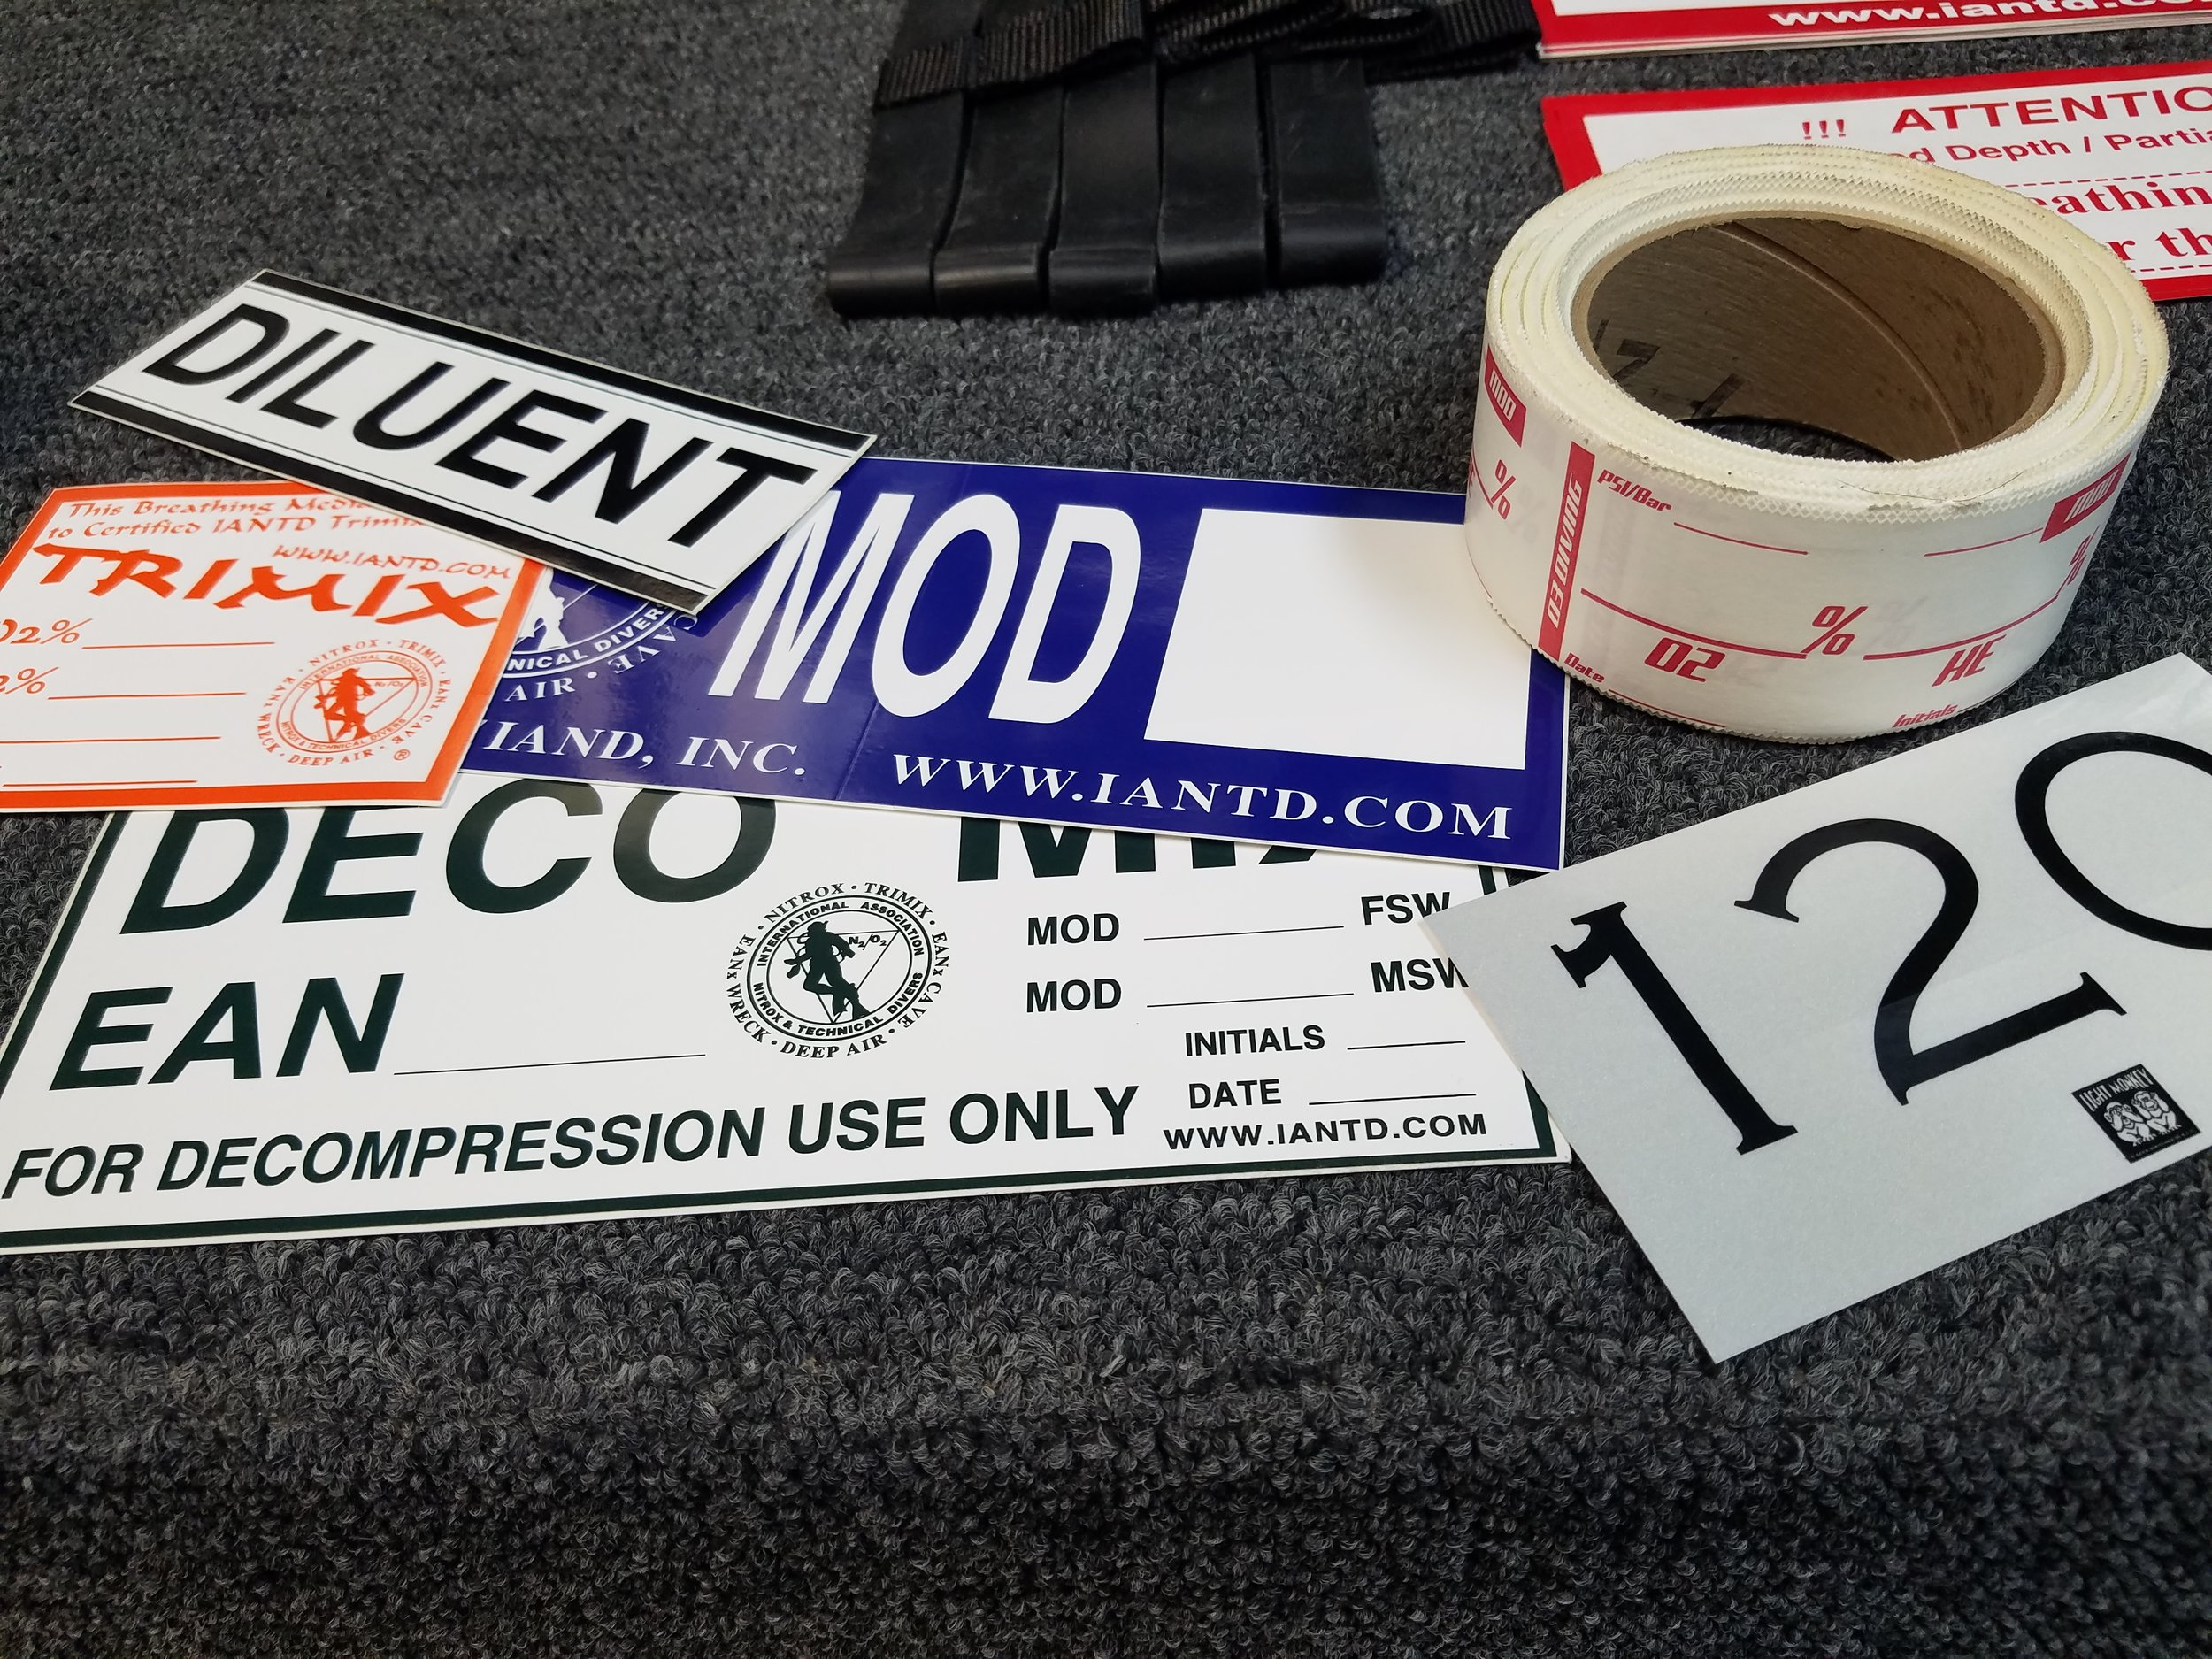 Labels for cylinders exist in many forms, at a minimum, a label with the percentage of oxygen and helium and the MOD should be in a spot on the cylinder clearly visible to all team members.